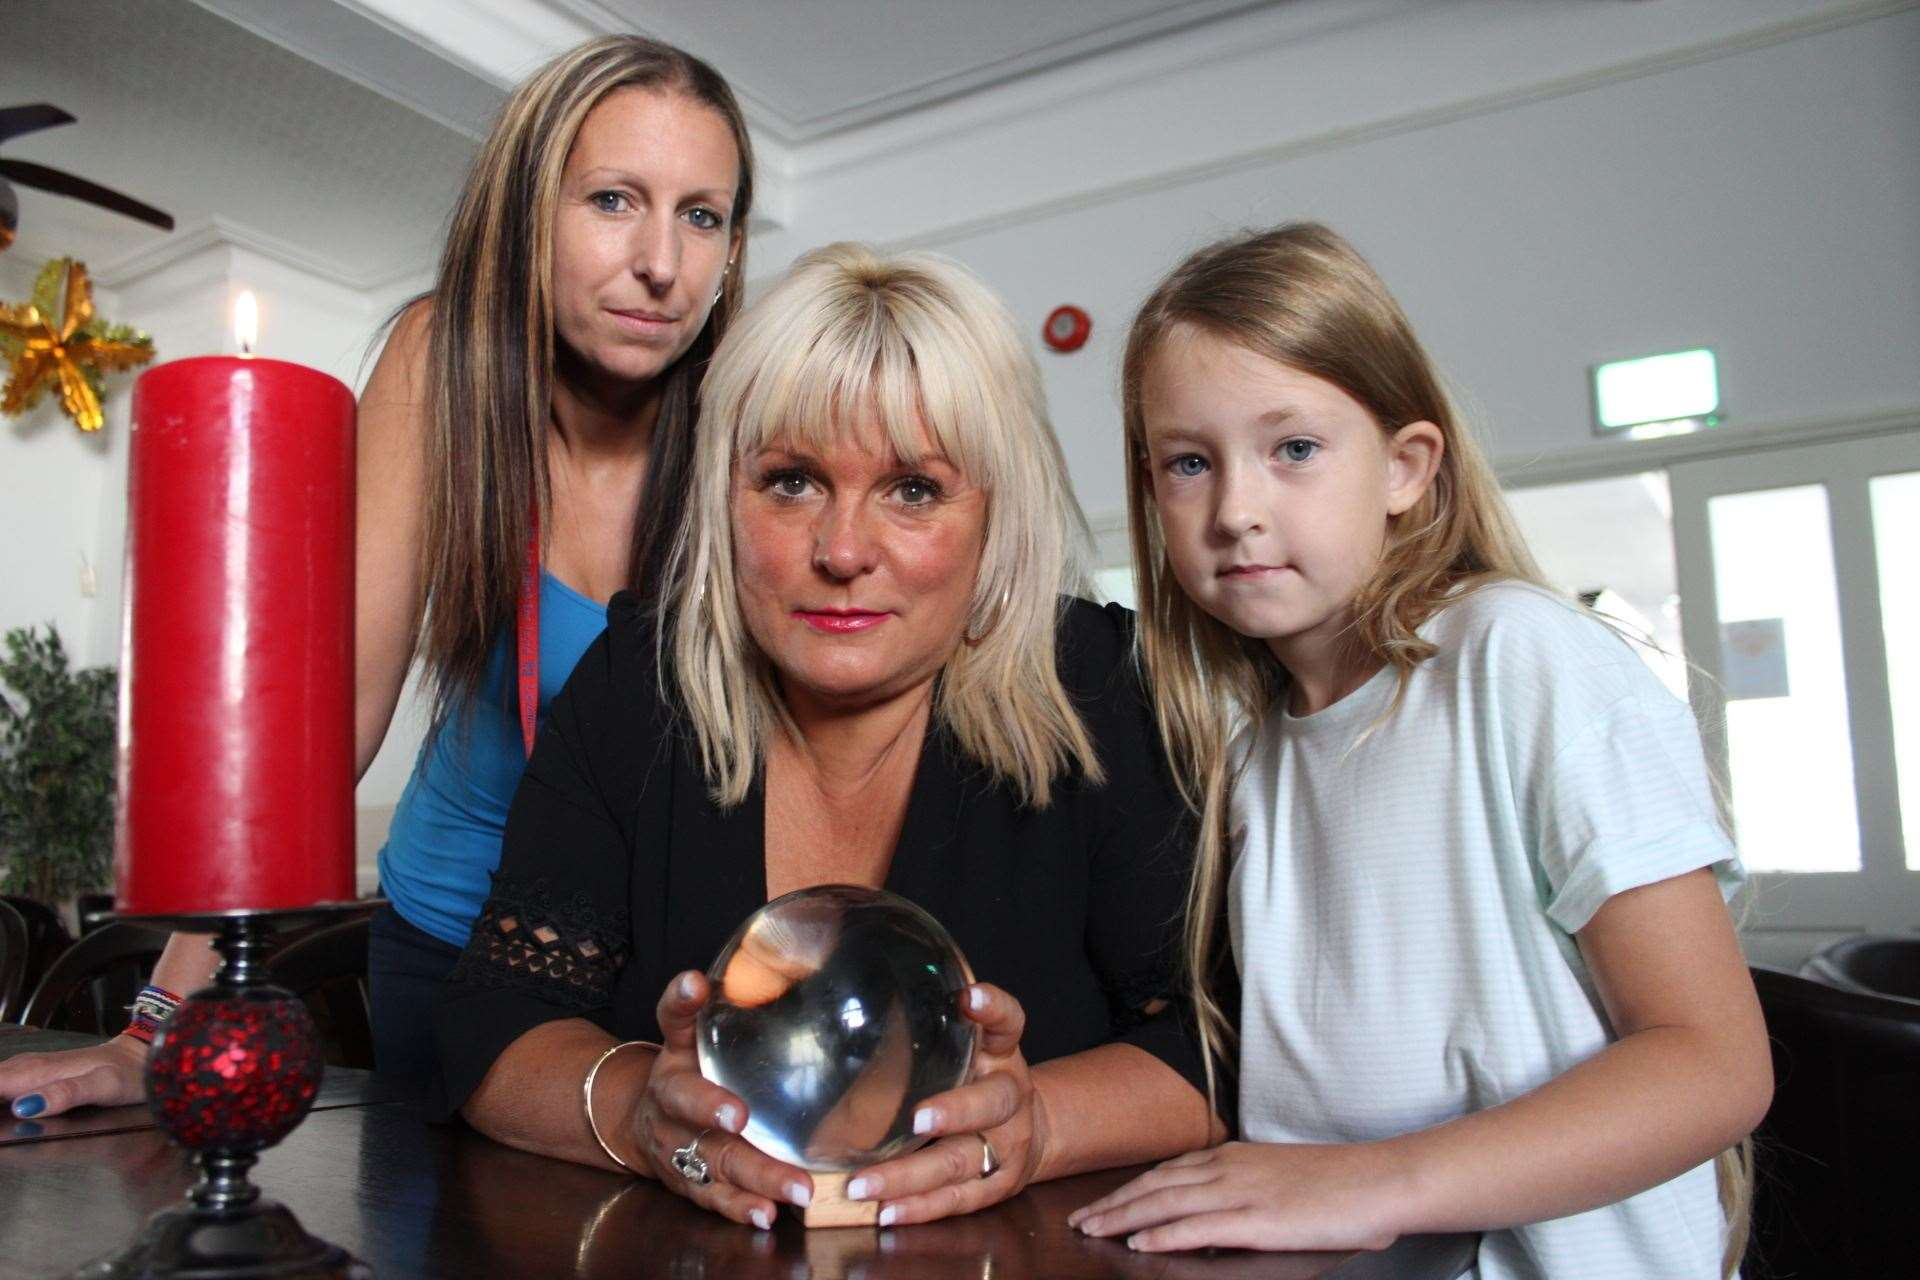 Sheppey medium Charlotte Clark used her crystal ball to investigate spirits at the Royal Hotel, Sheerness, in 2017, pictured with manager Sarah Lewry and her daughter Jazmin, 8.